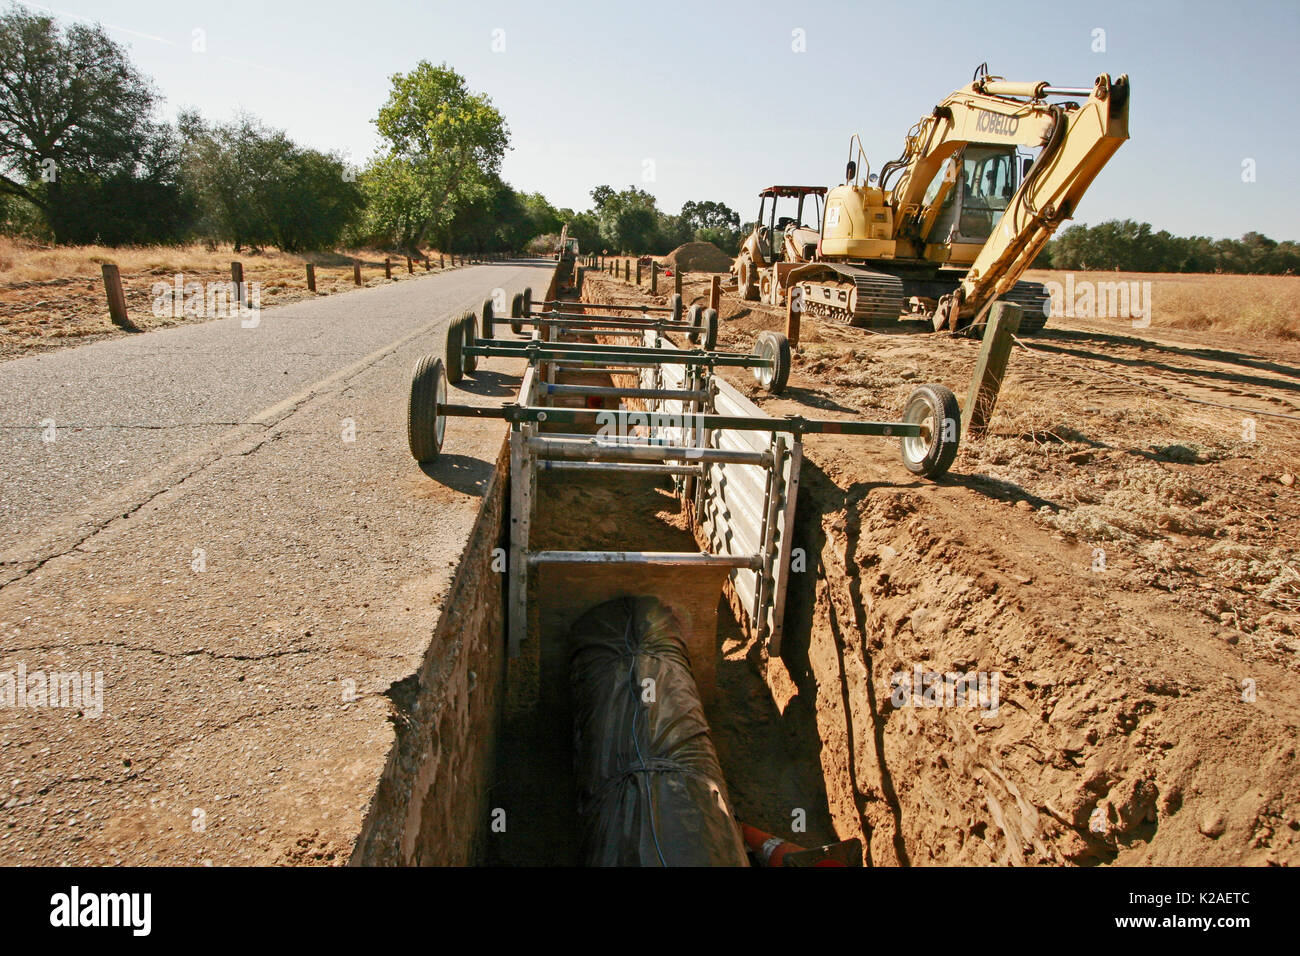 TRACKED EXCAVATOR AT DIG SITE AND VIEW ALONG DITCH WITH SAFETY SHORING BOX, CALIFORNIA - Stock Image